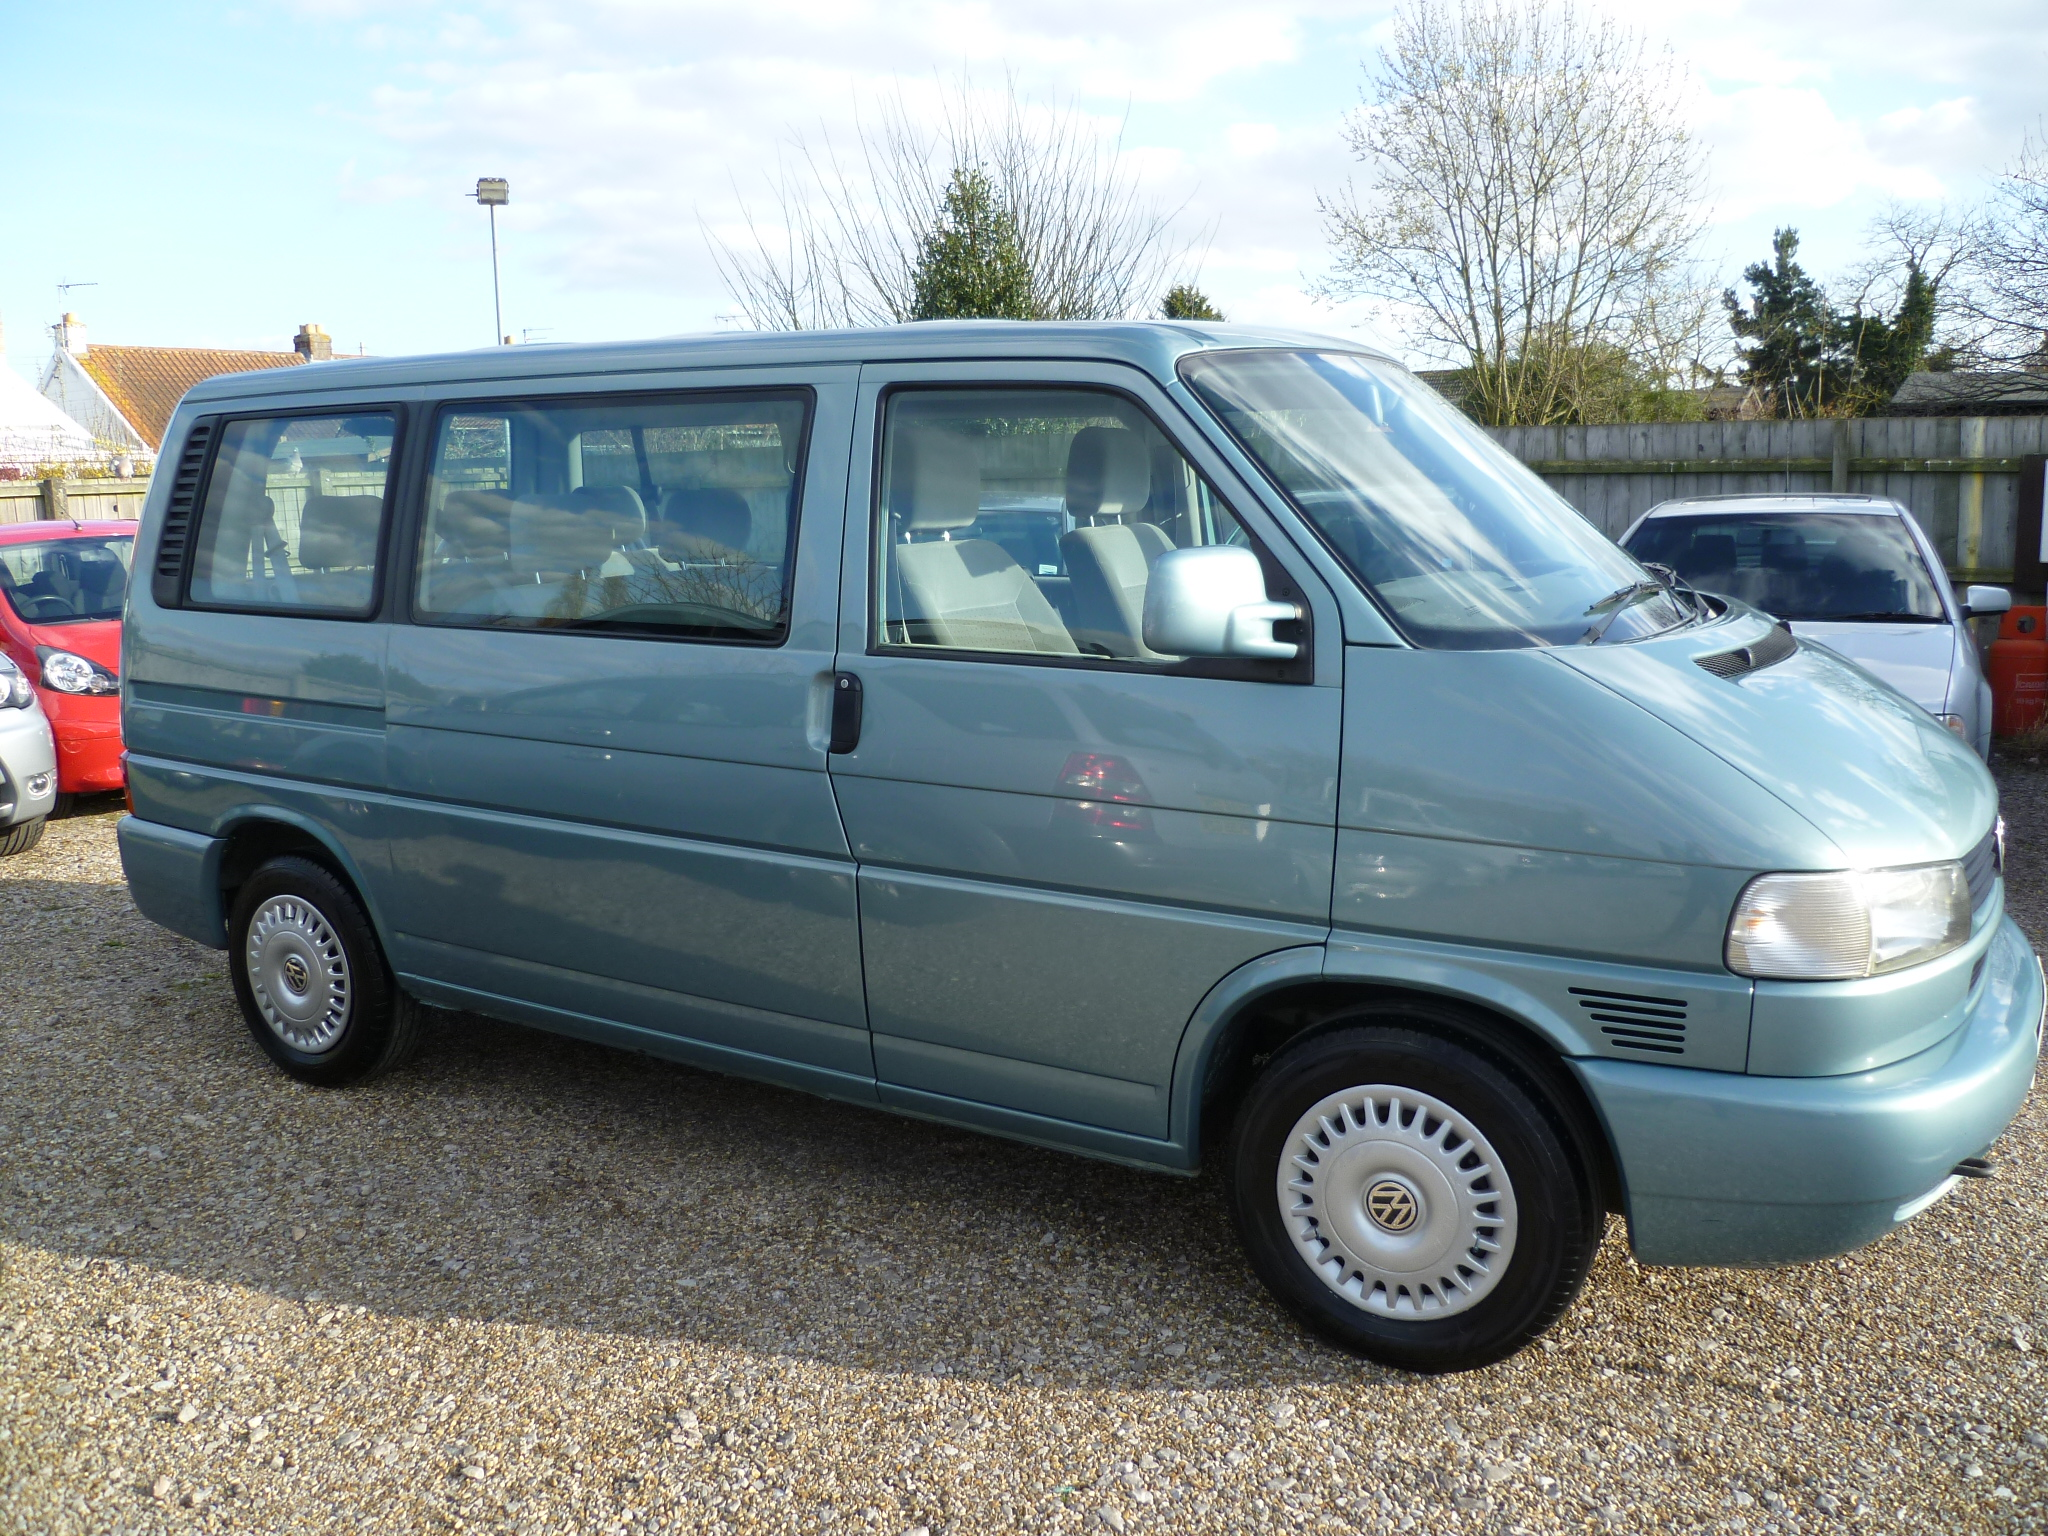 VW Caravelle 2.5TDI Automatic 014